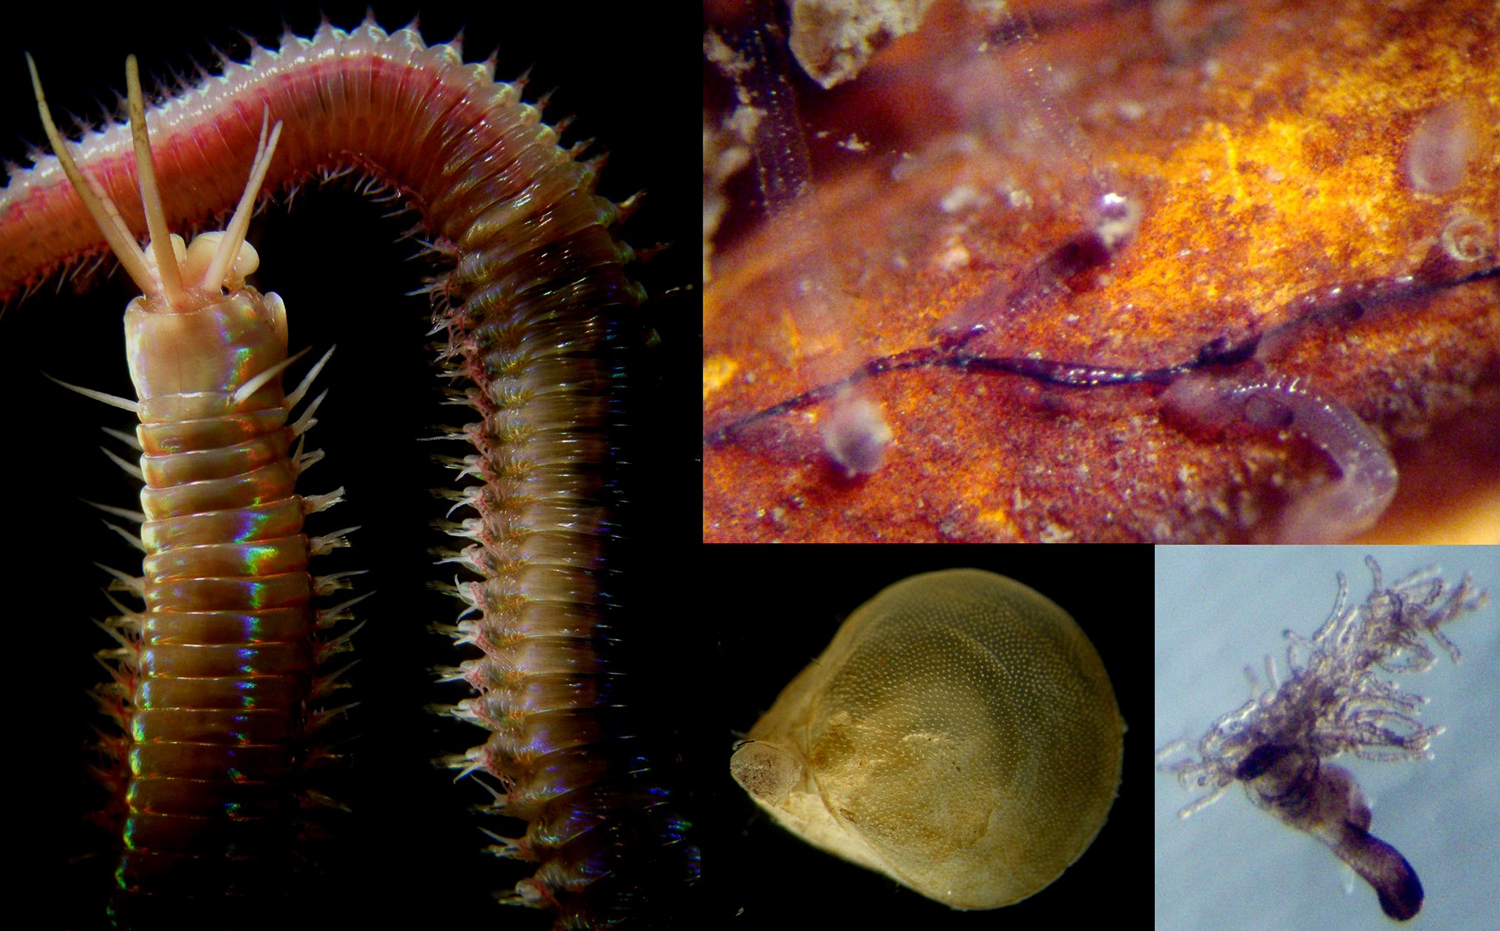 Left:Eunice norvegicawith extruded fangs. Middle: you often see the claws of the small squat lobsterMunidopsis serricornissticking out between branches of corals. Right:Barentiasp. (Entoprocta) was found almost solely on panels close to corals.